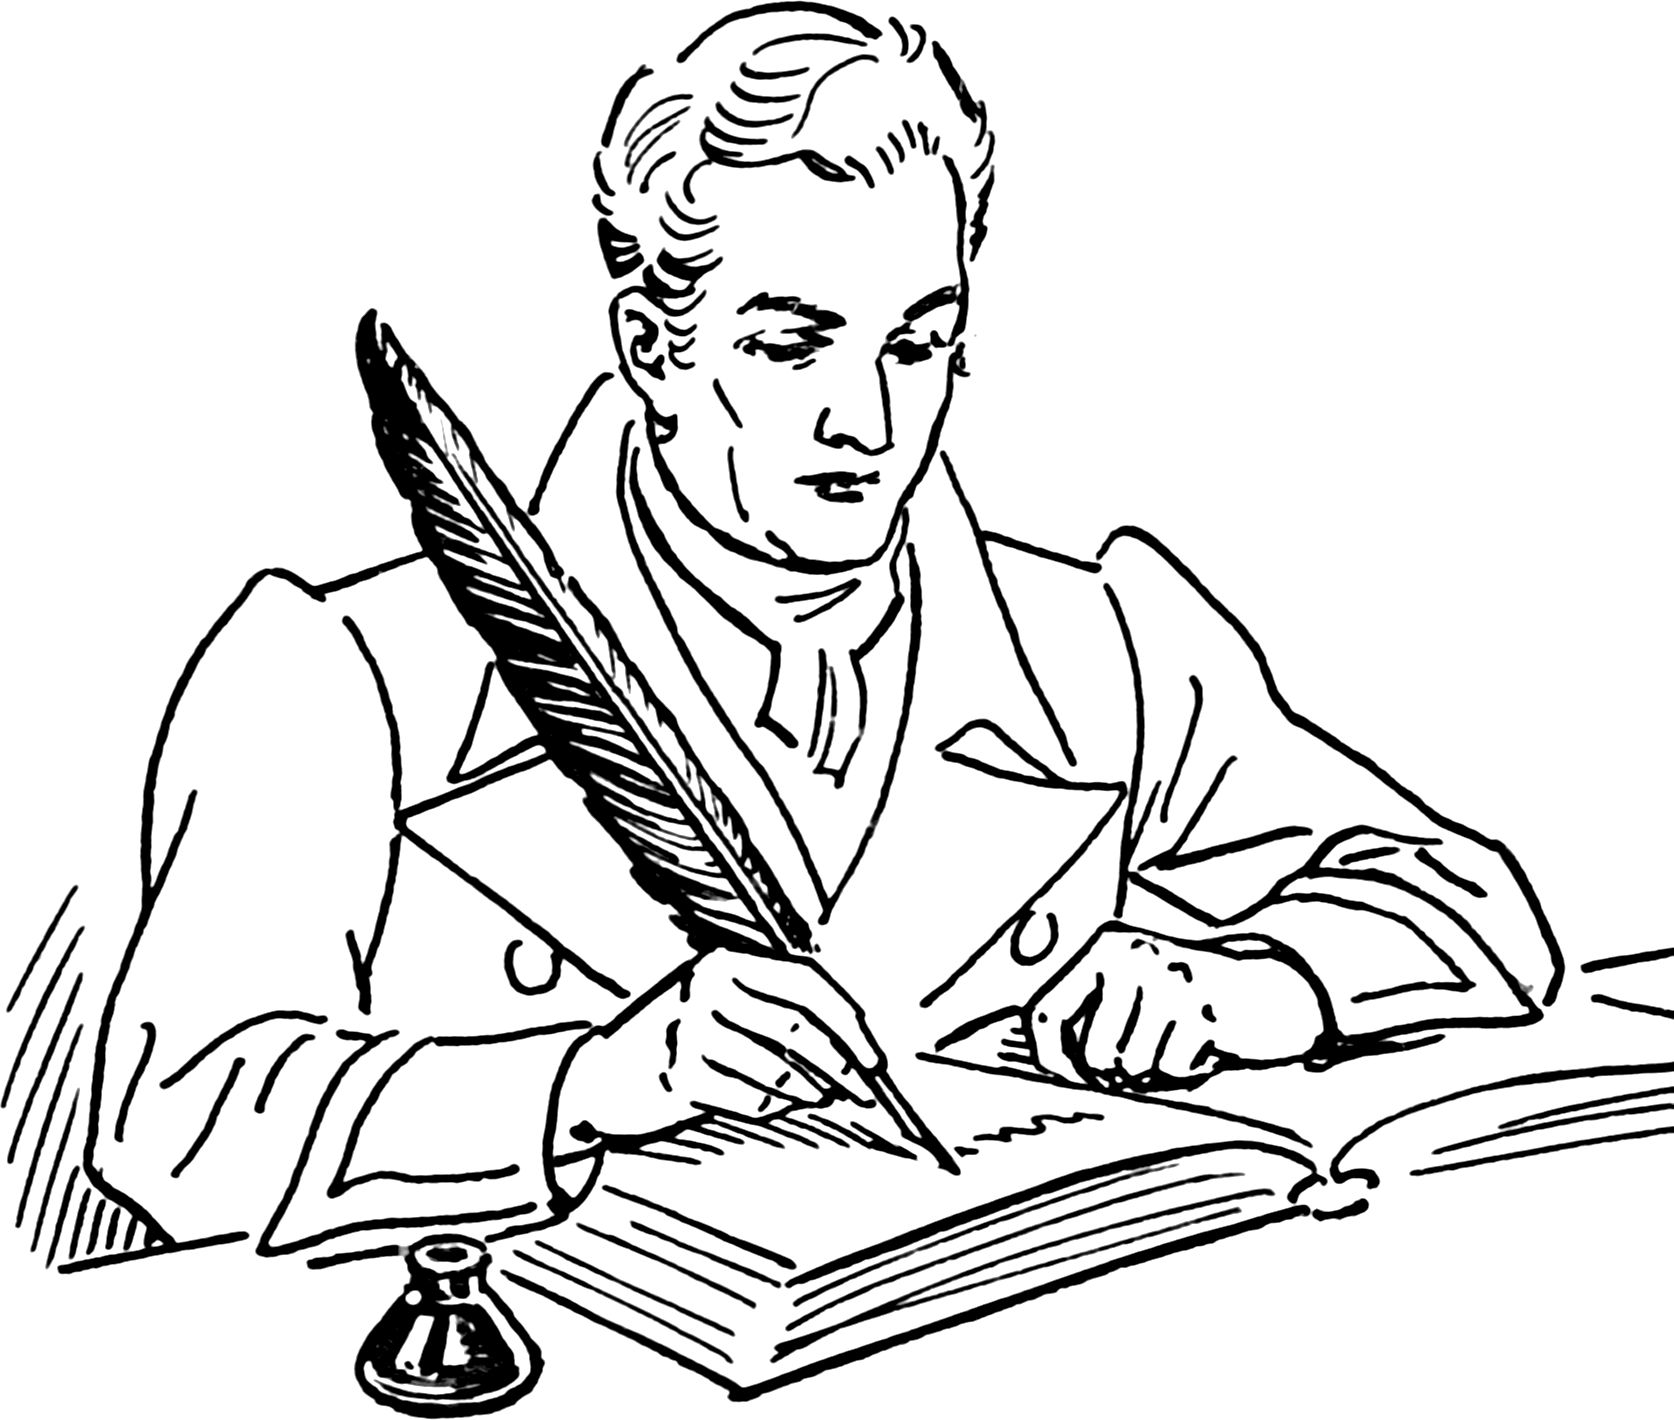 Free Journalist Clipart, Download Free Clip Art, Free Clip.